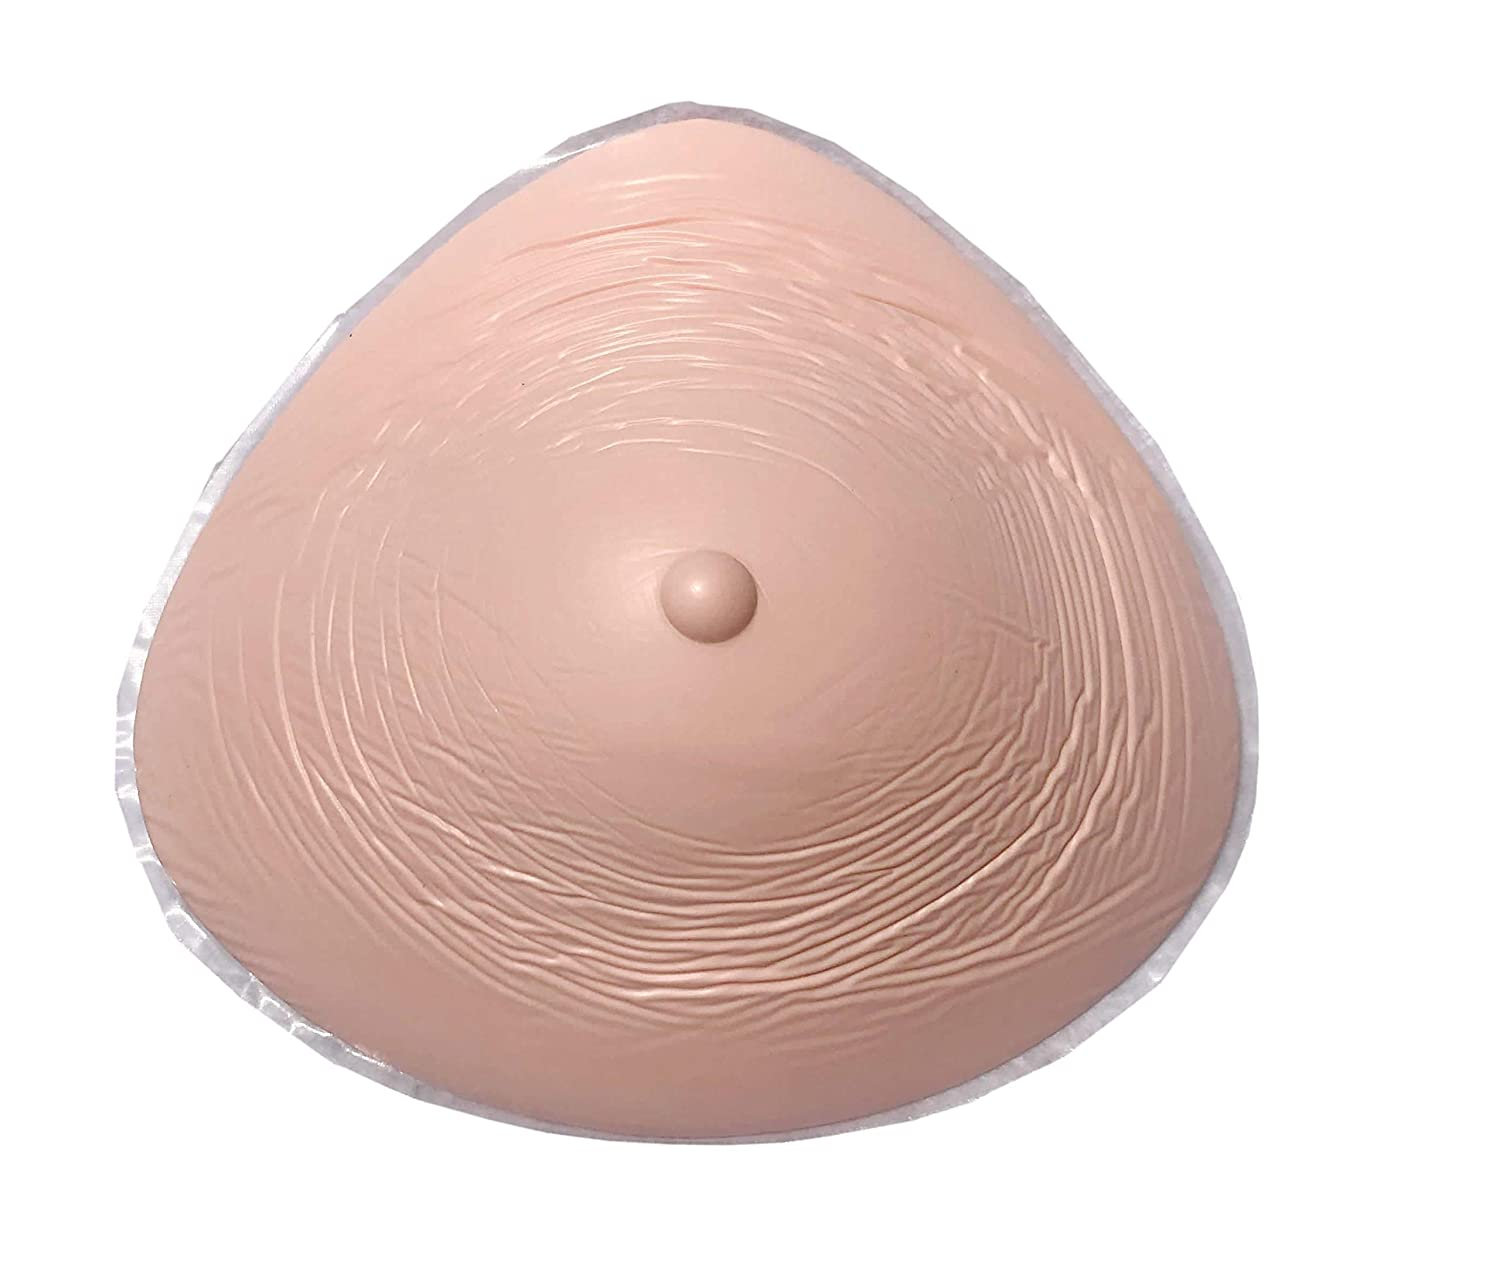 Lightweight Silicone Breast Forms Women Mastectomy Prosthesis Armpit Make Up Type Bra Inserts Pad 1 Piece